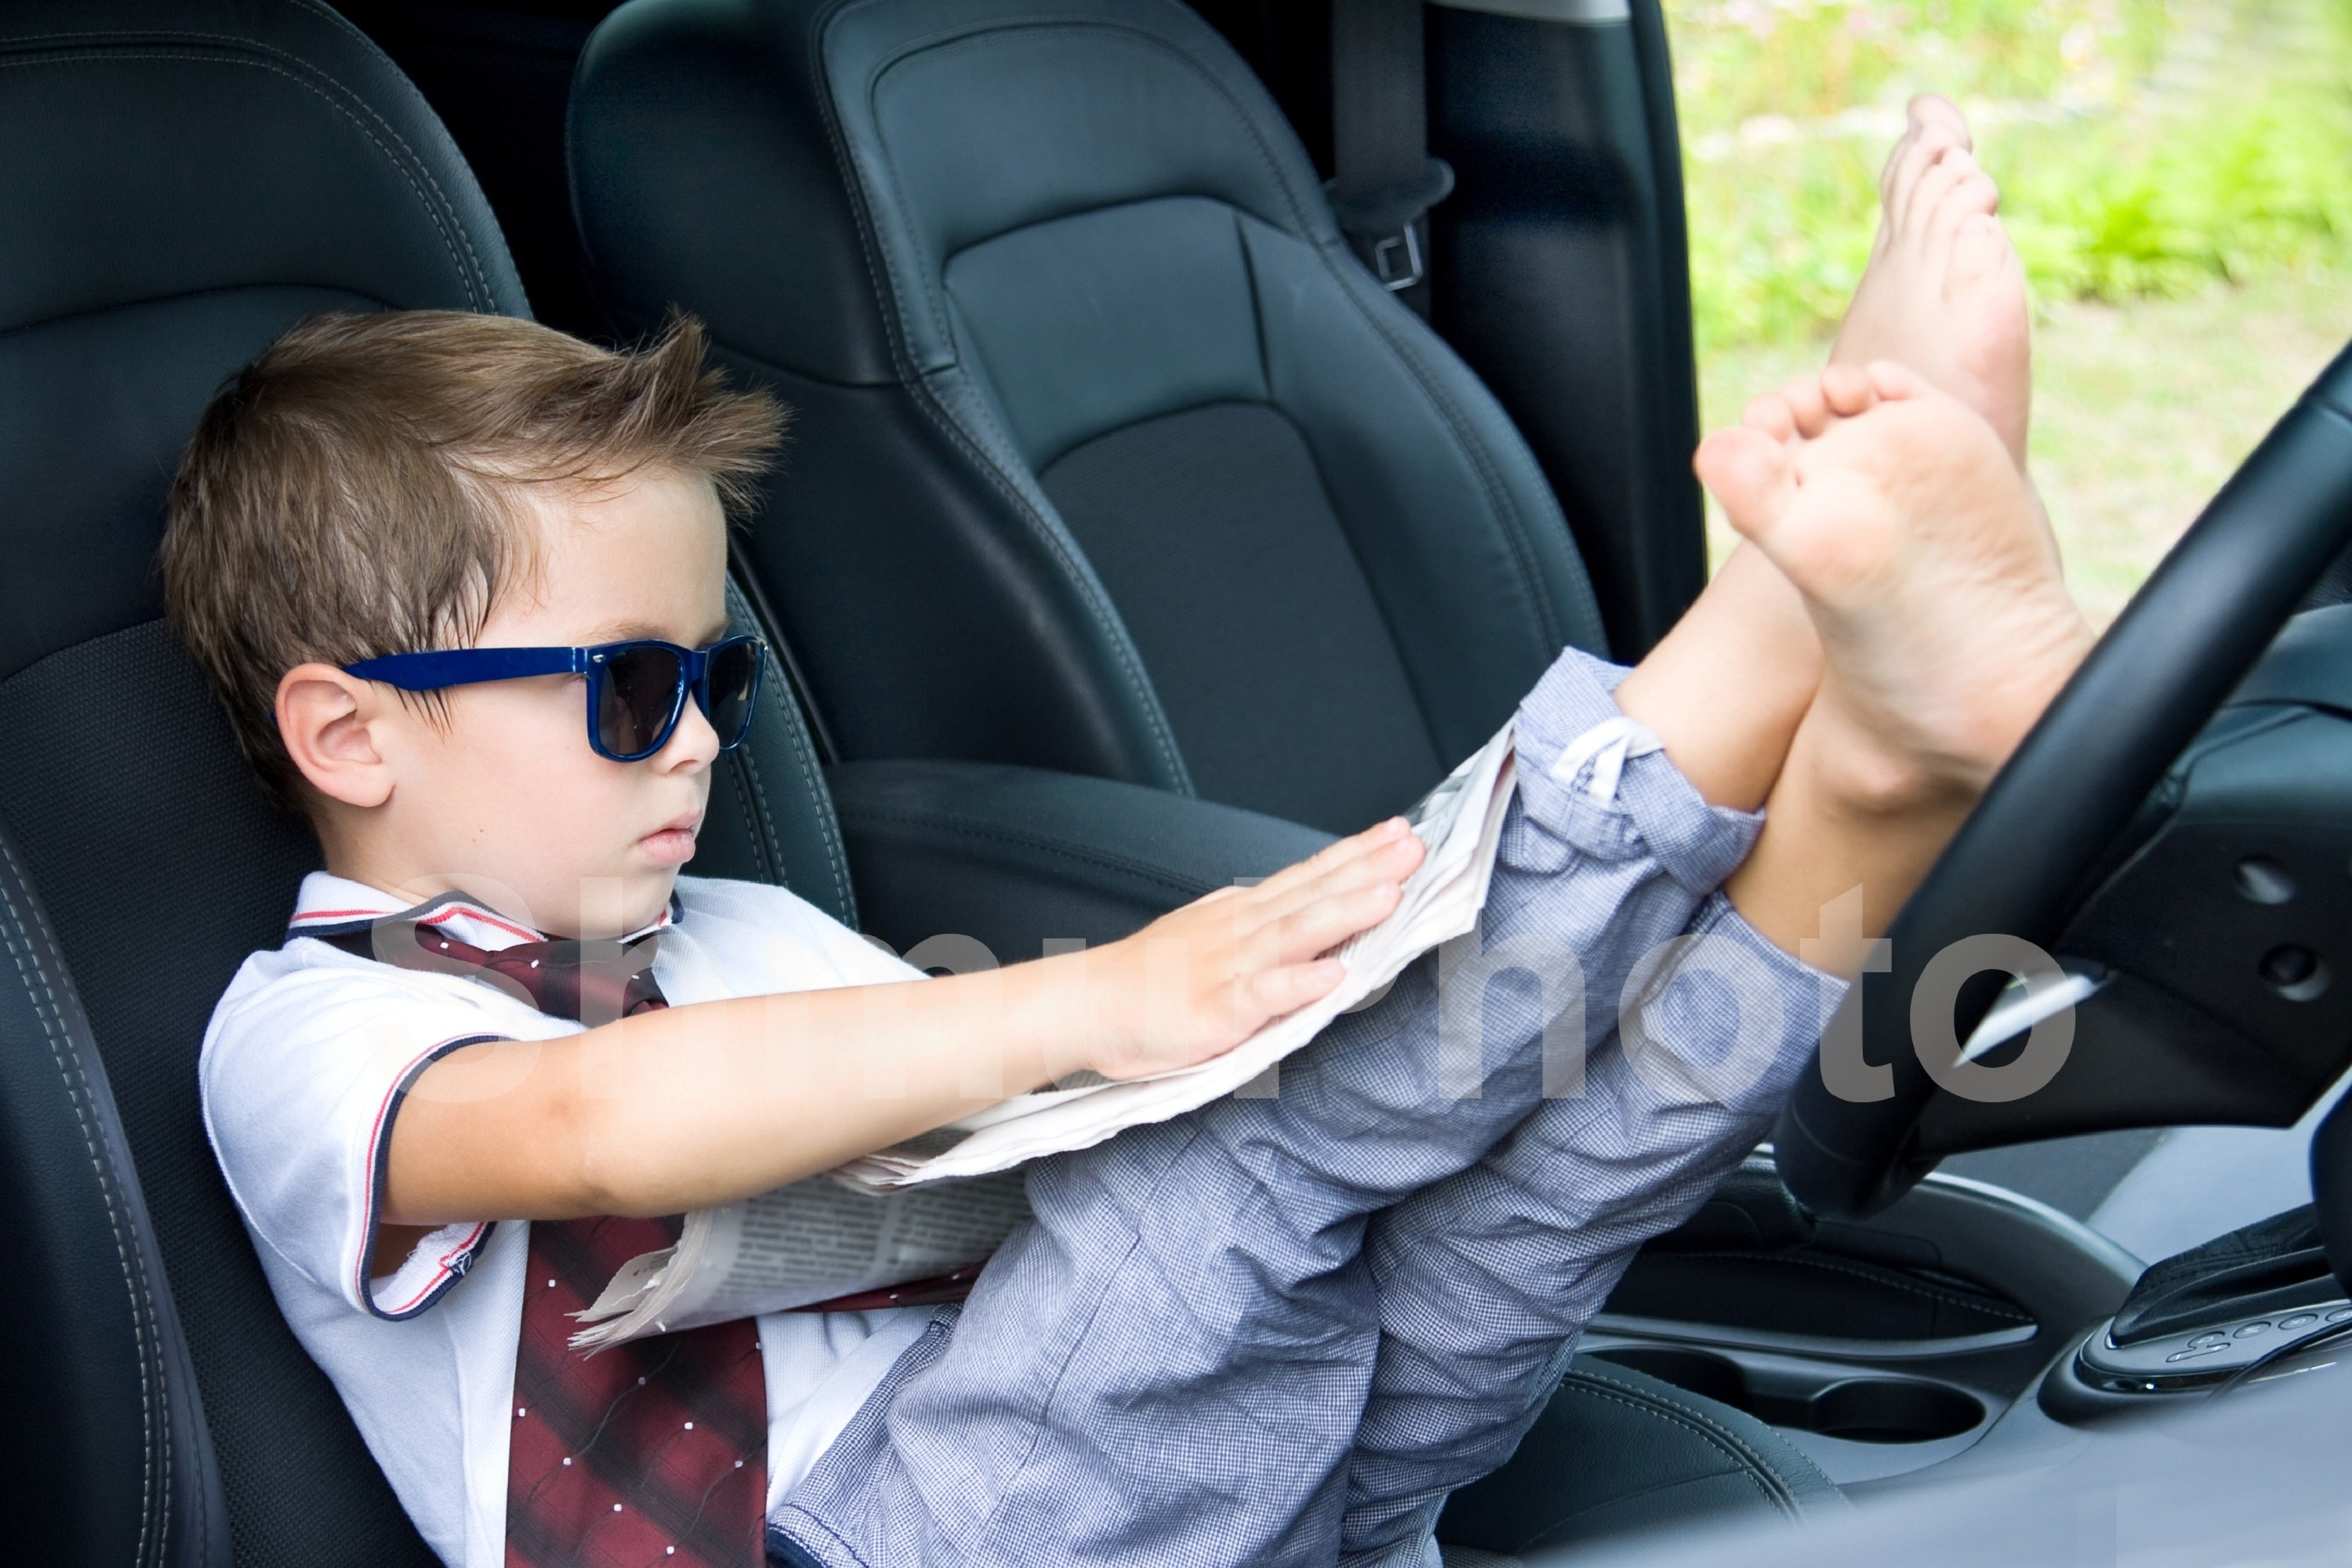 Cute driver. Smilng boy in sunglases in car example image 1